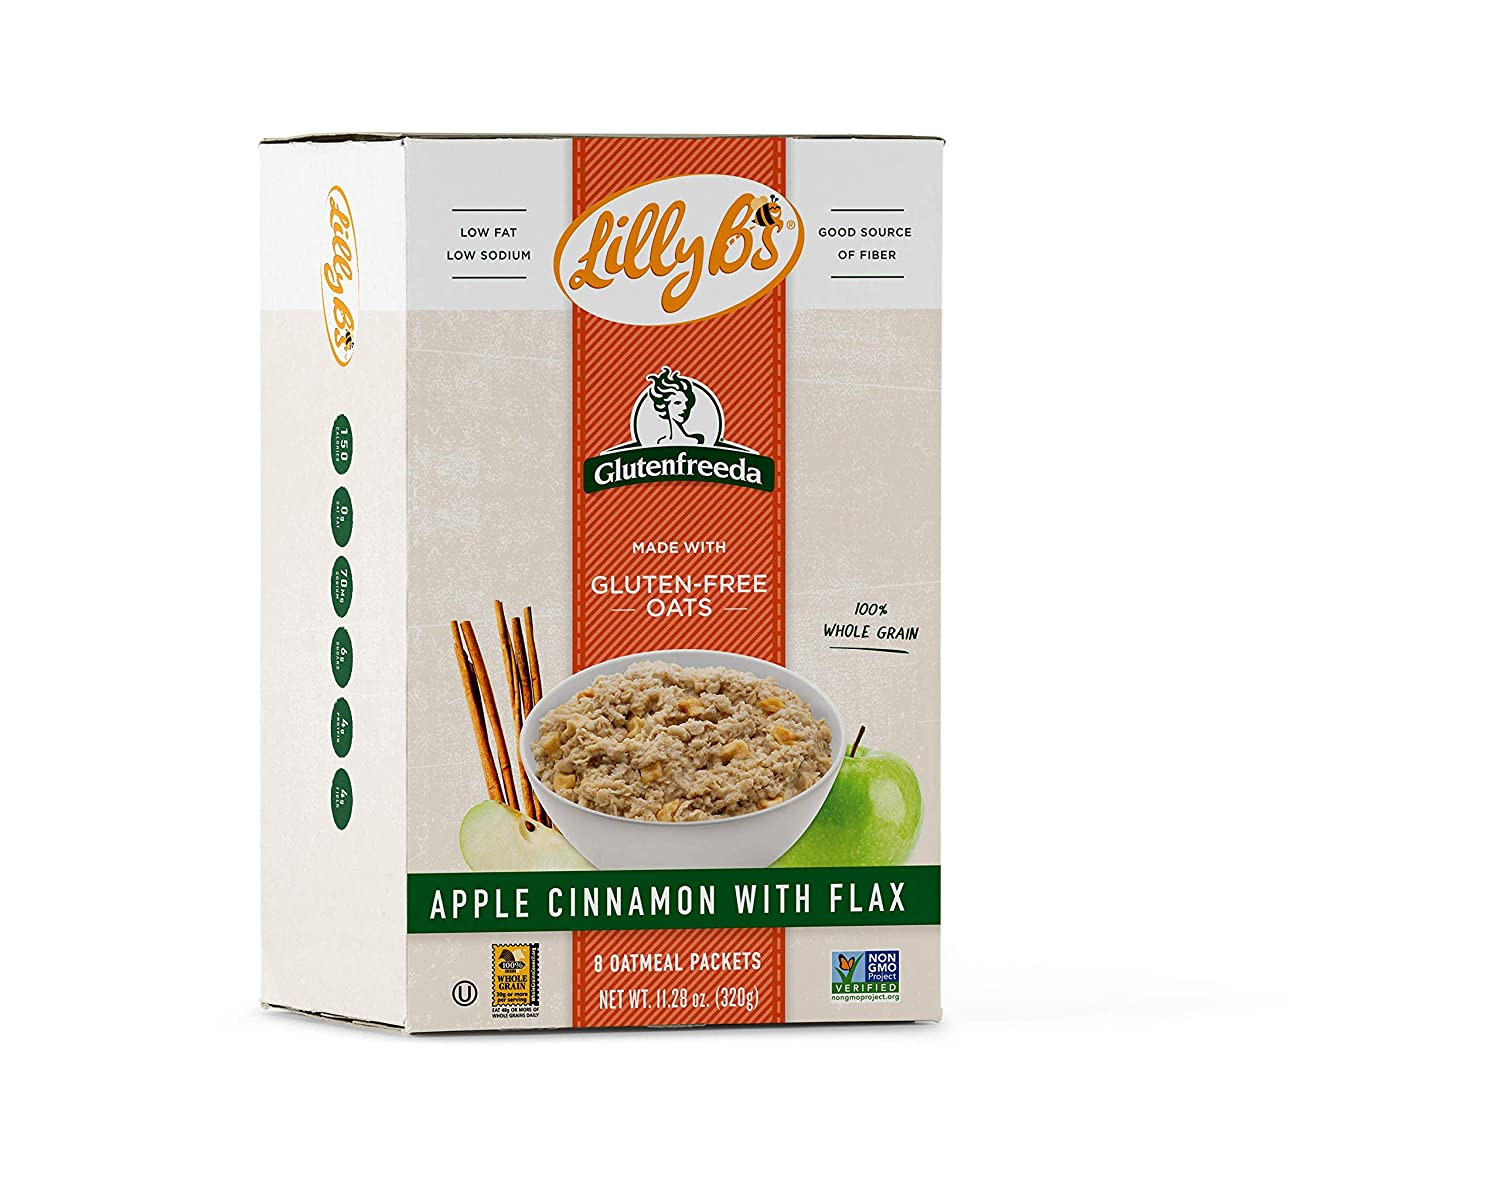 Lilly B's Gluten Free Instant Oatmeal, Apple Cinnamon with Flax, 8-packet Per Box (Pack of 8) (BXD- 123)